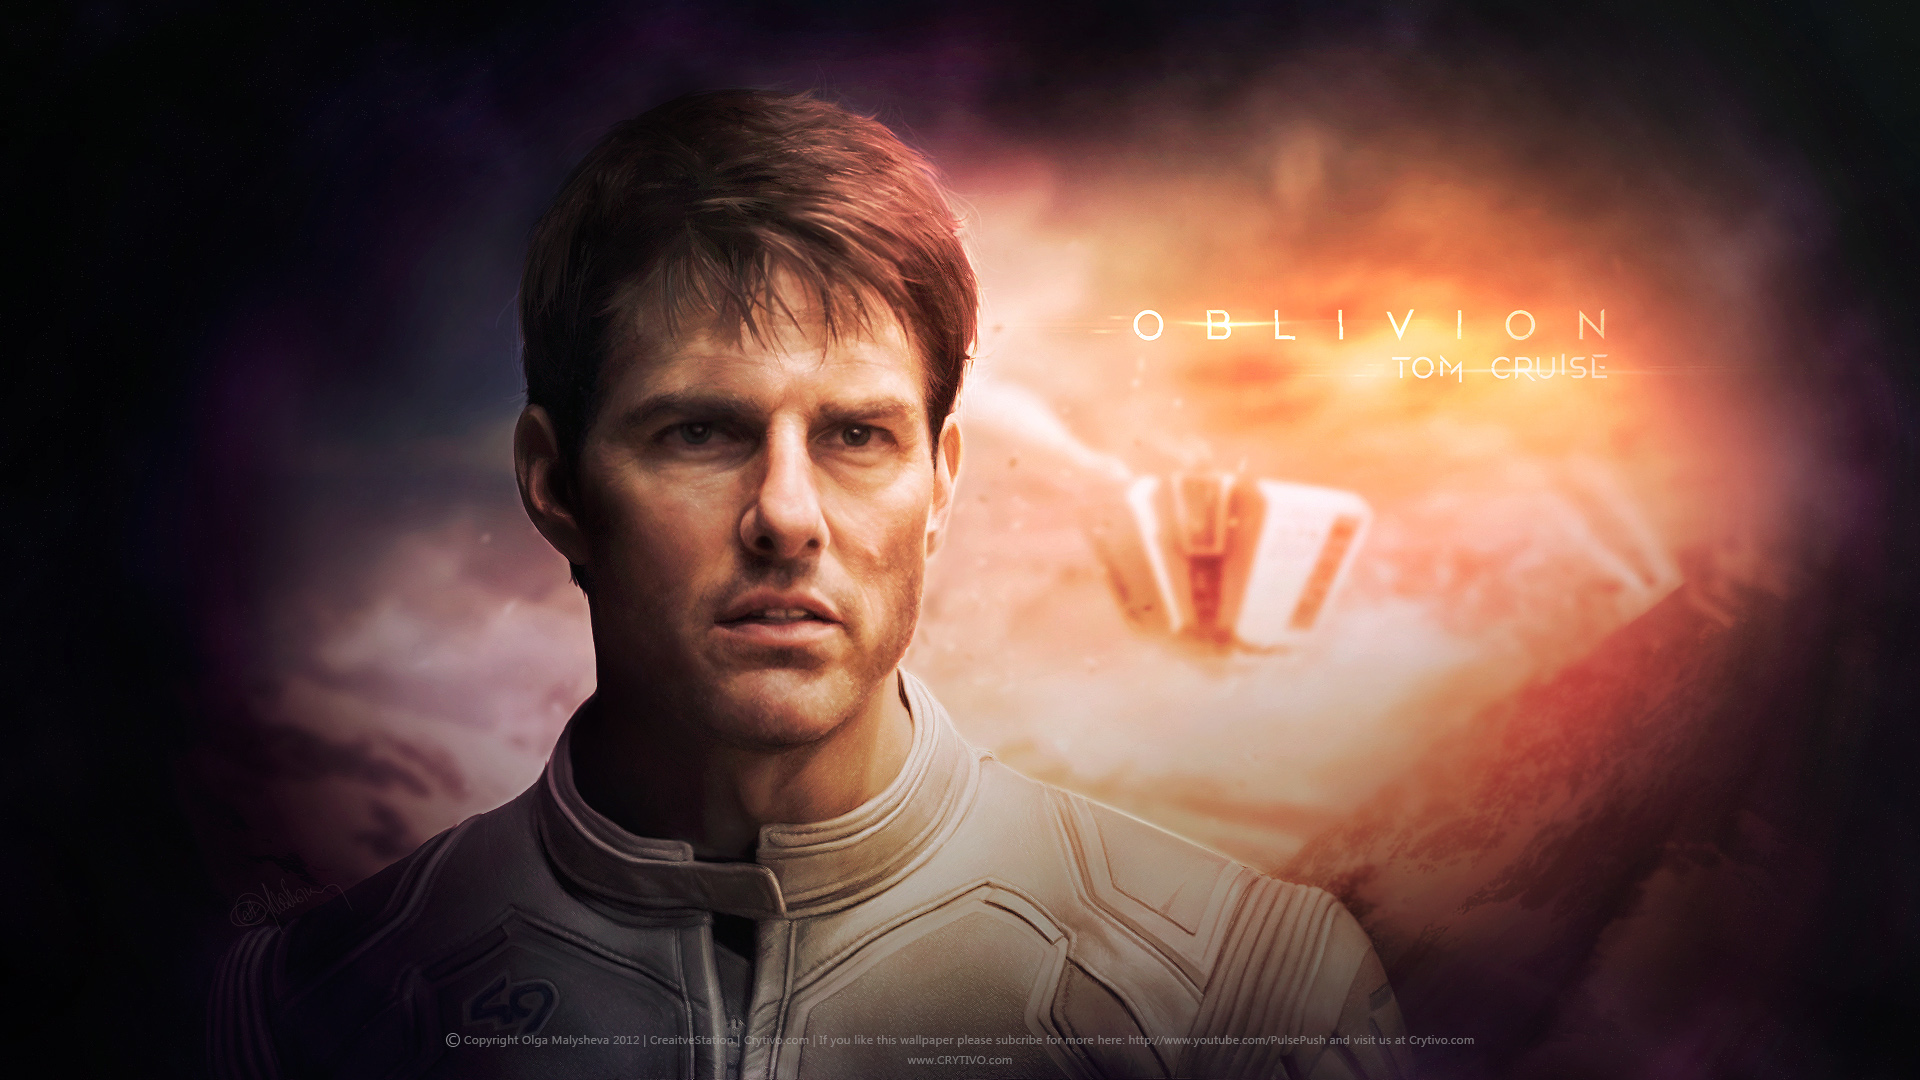 Tom Cruise Wallpapers 29 1920x1080